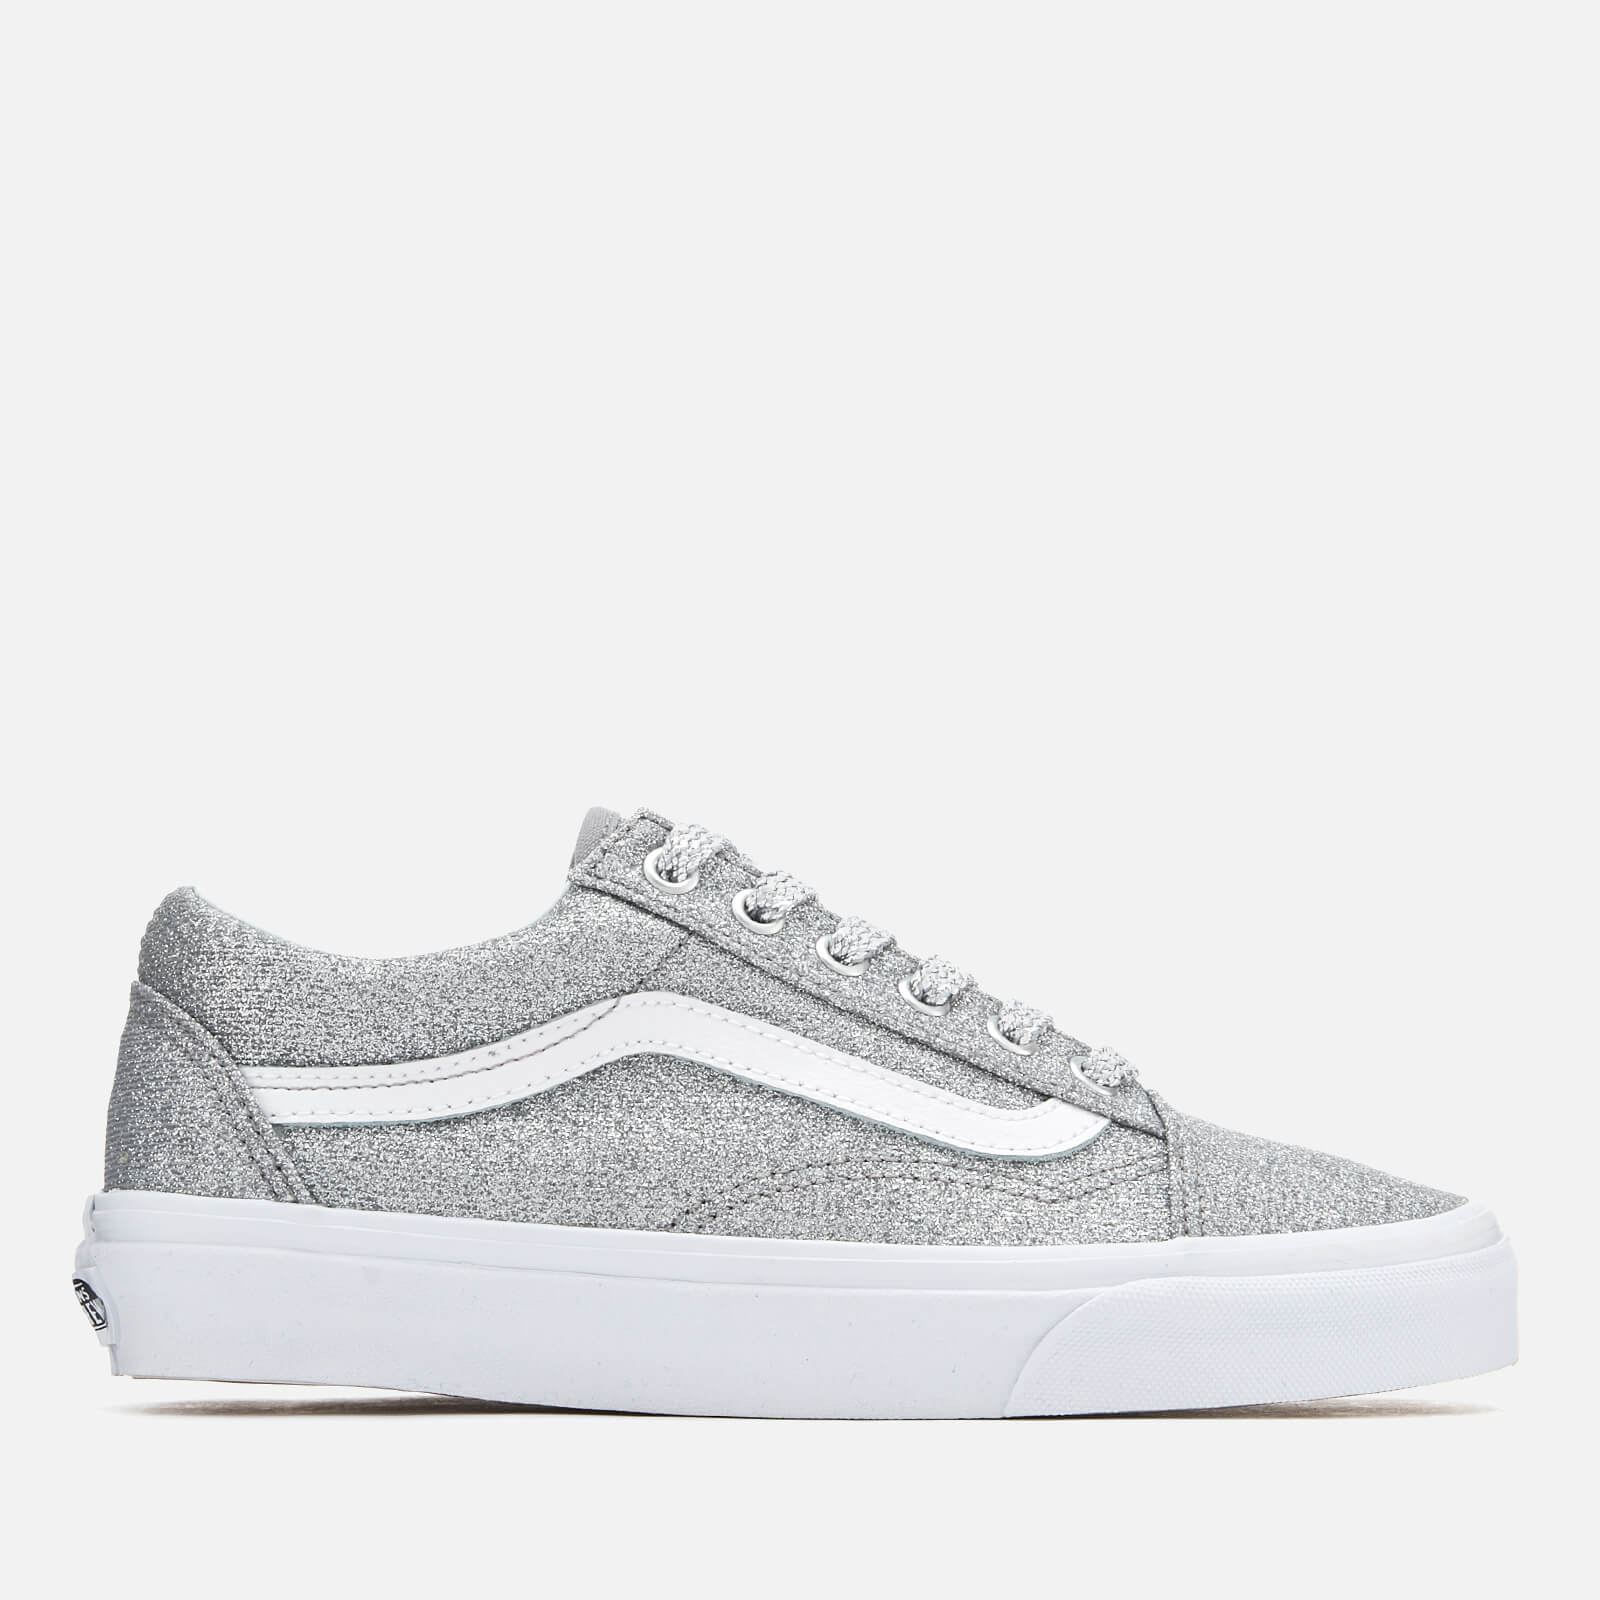 a0025c4bb603 Vans Women's Old Skool Lurex Glitter Trainers - Silver/True White - Free UK  Delivery over £50